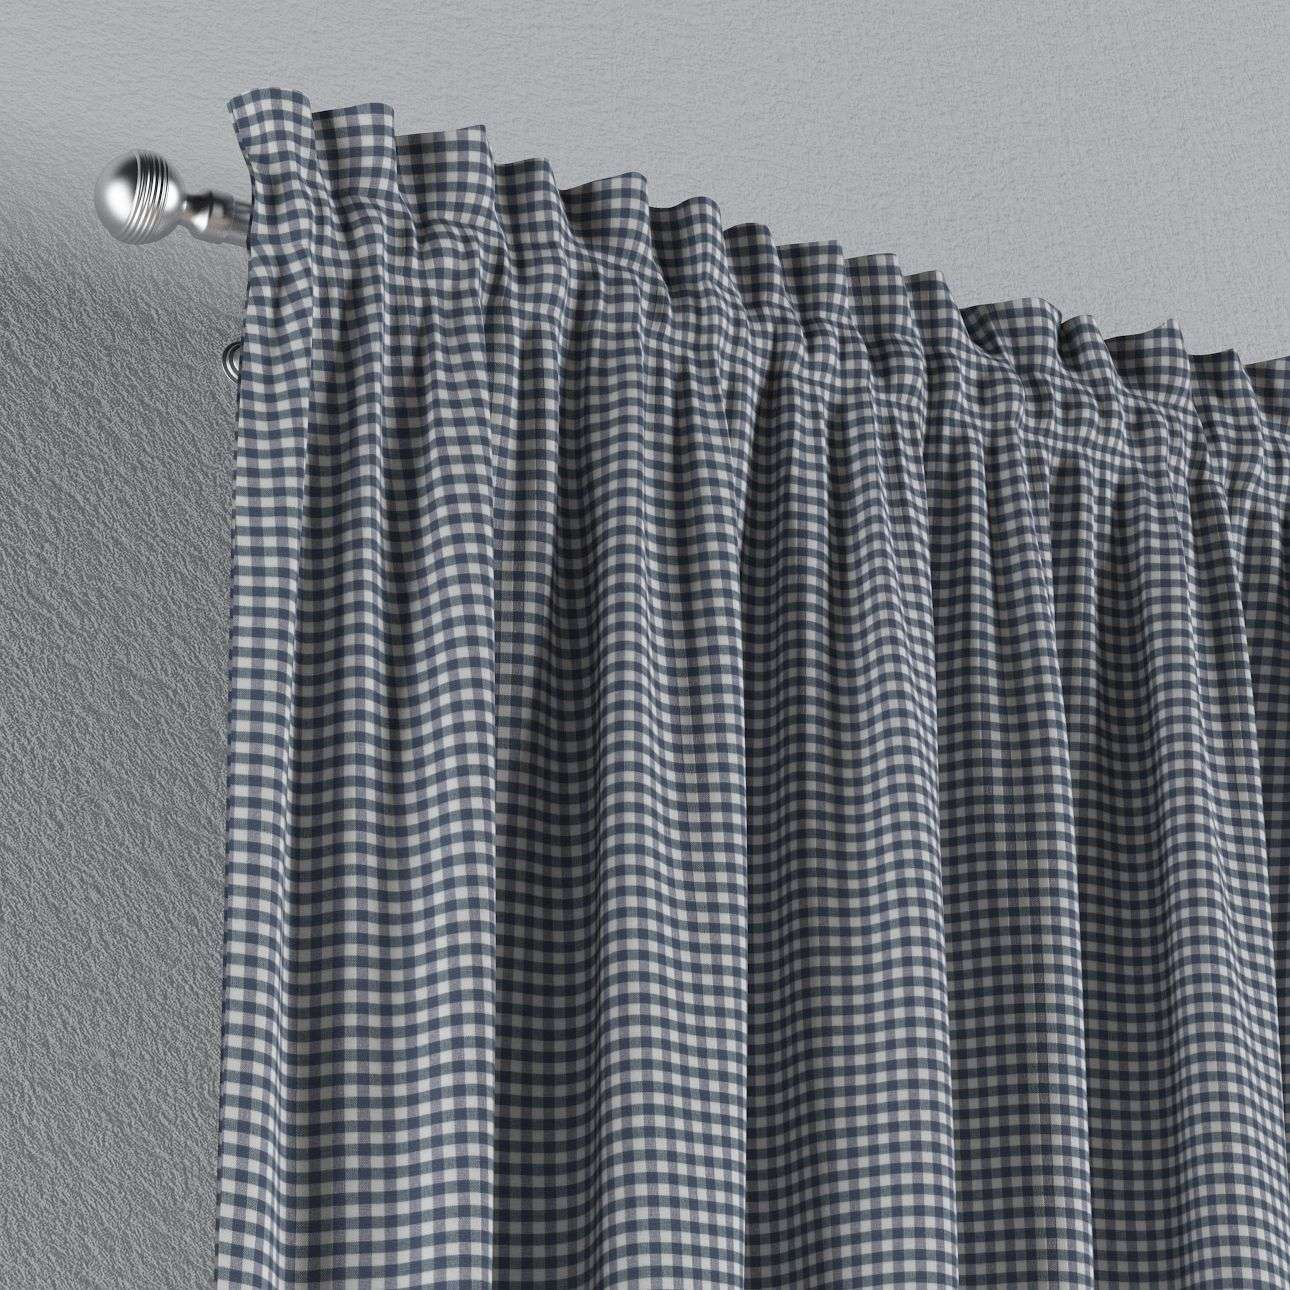 Slot and frill curtains 130 x 260 cm (51 x 102 inch) in collection Quadro, fabric: 136-00